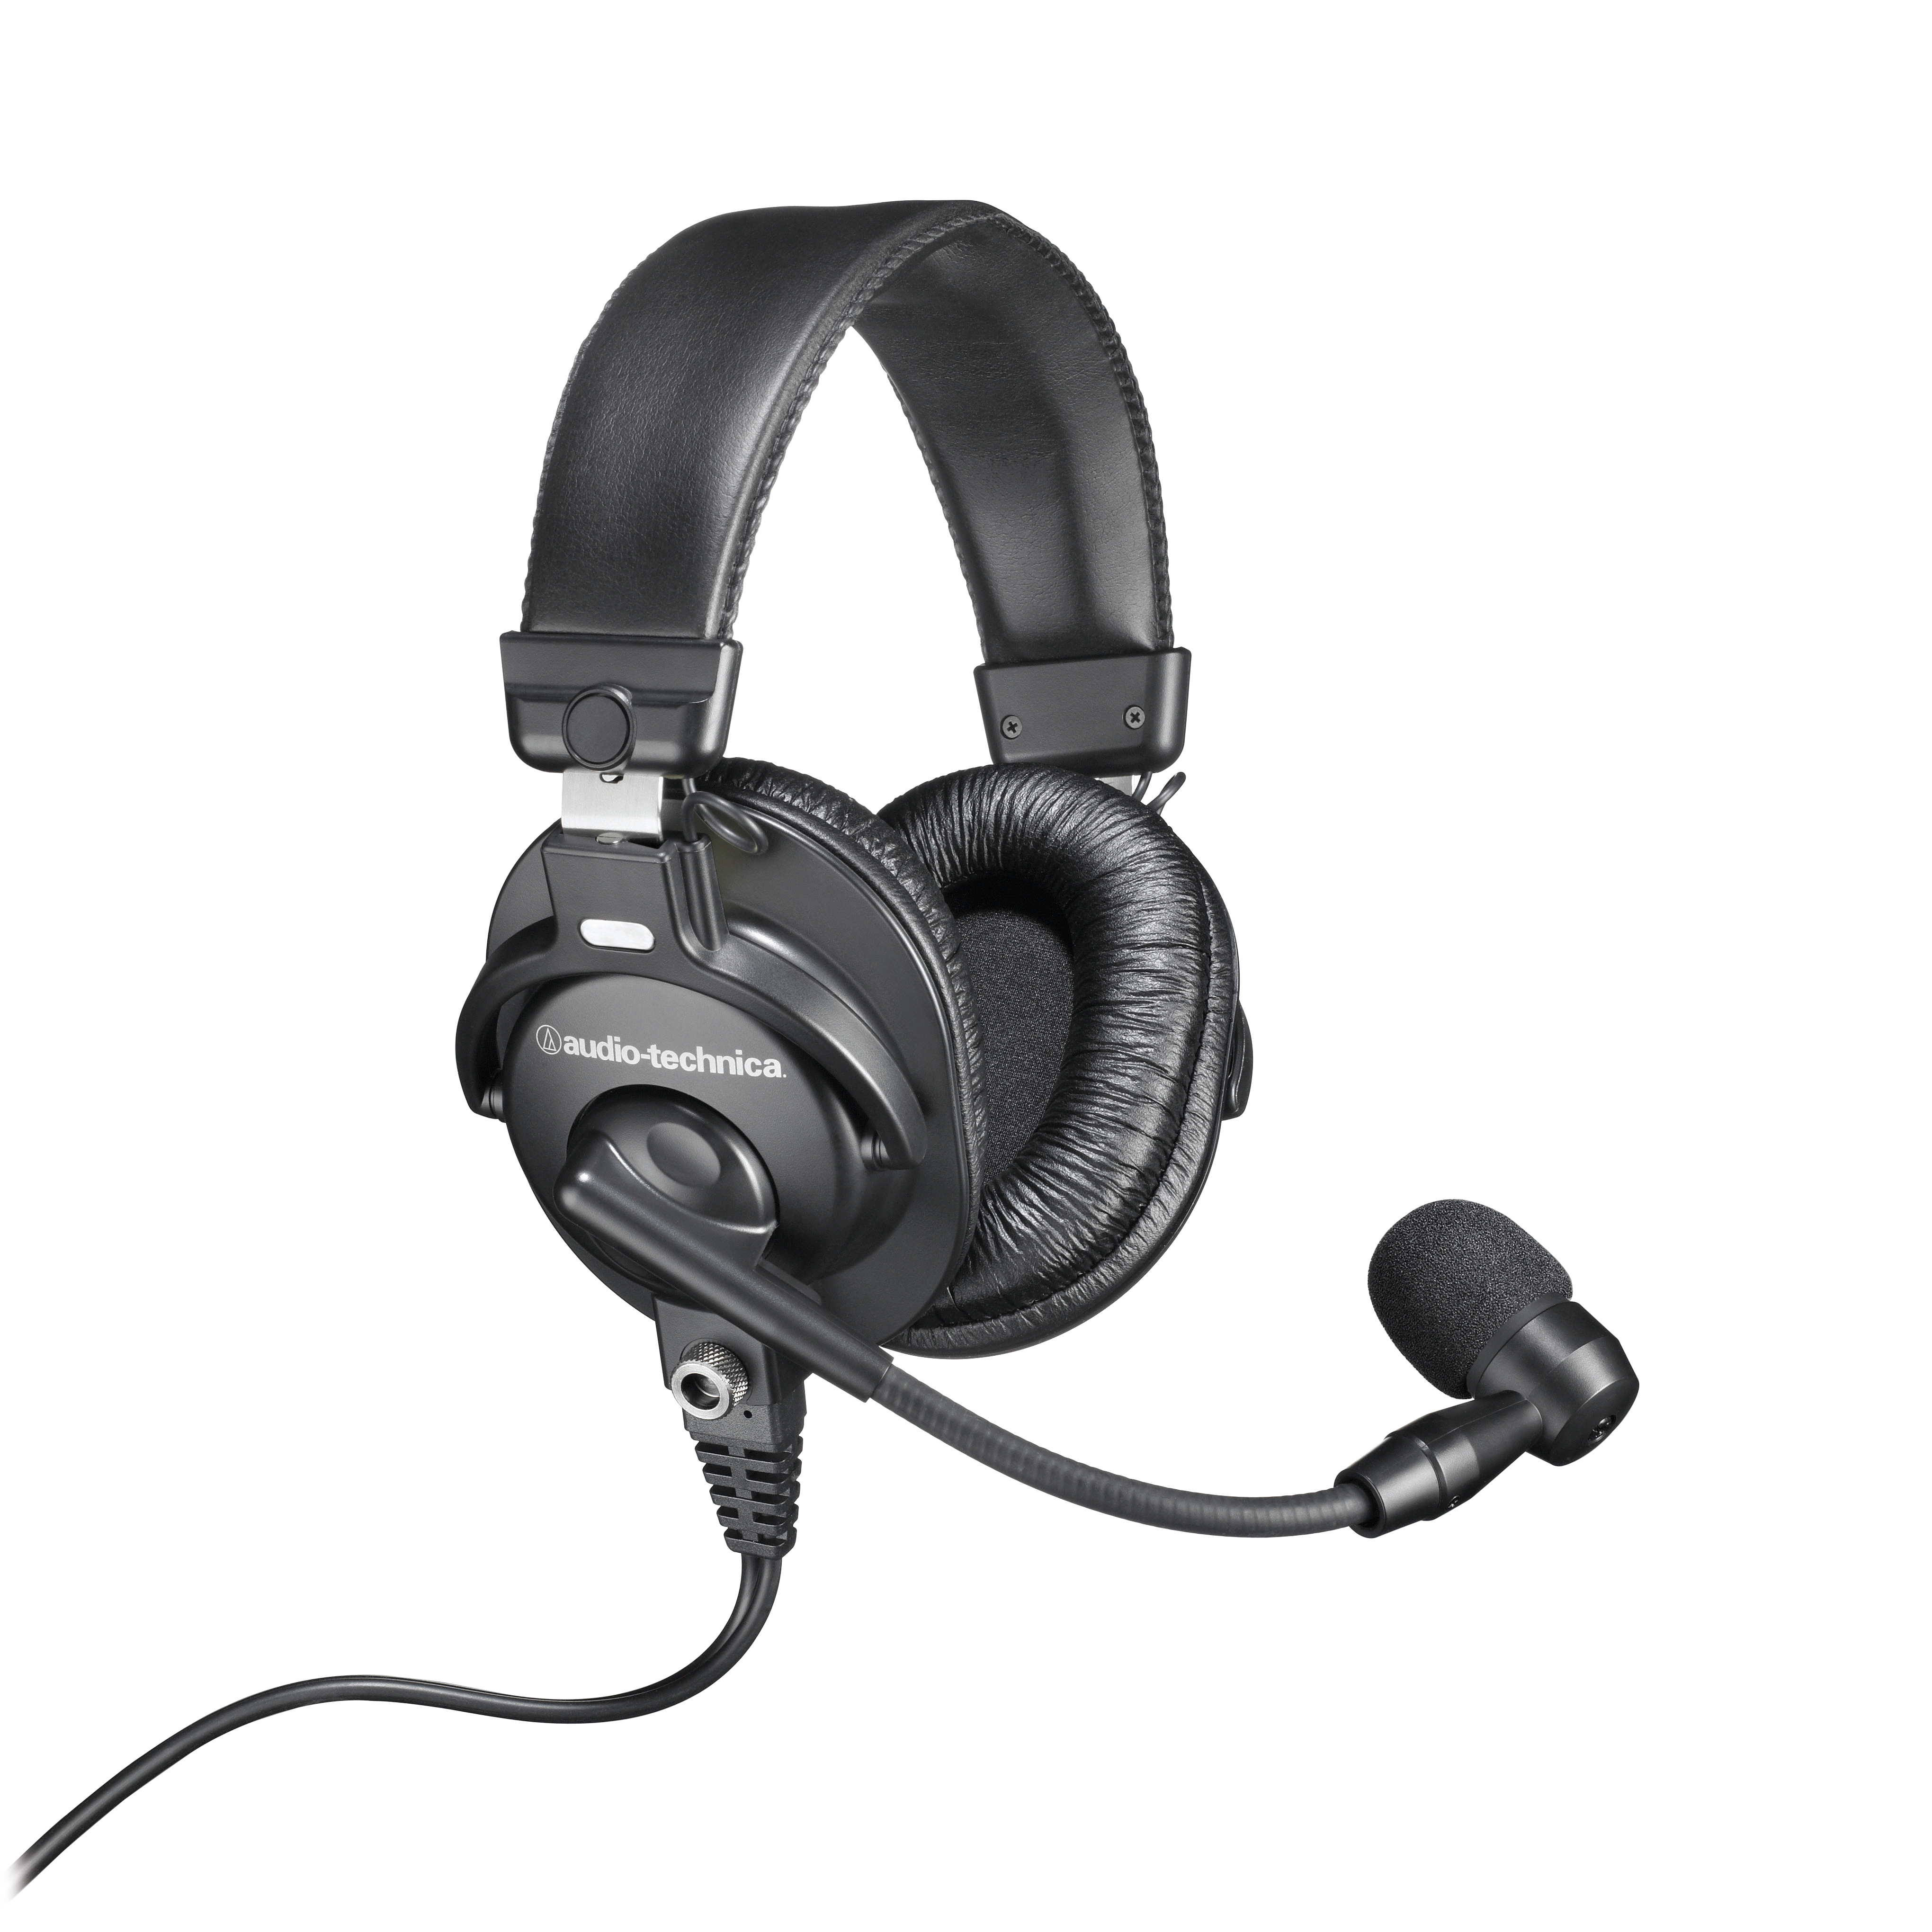 bdc162ac901 Tech Focus: Headphones and Headsets, Part 2 — What's on the Market